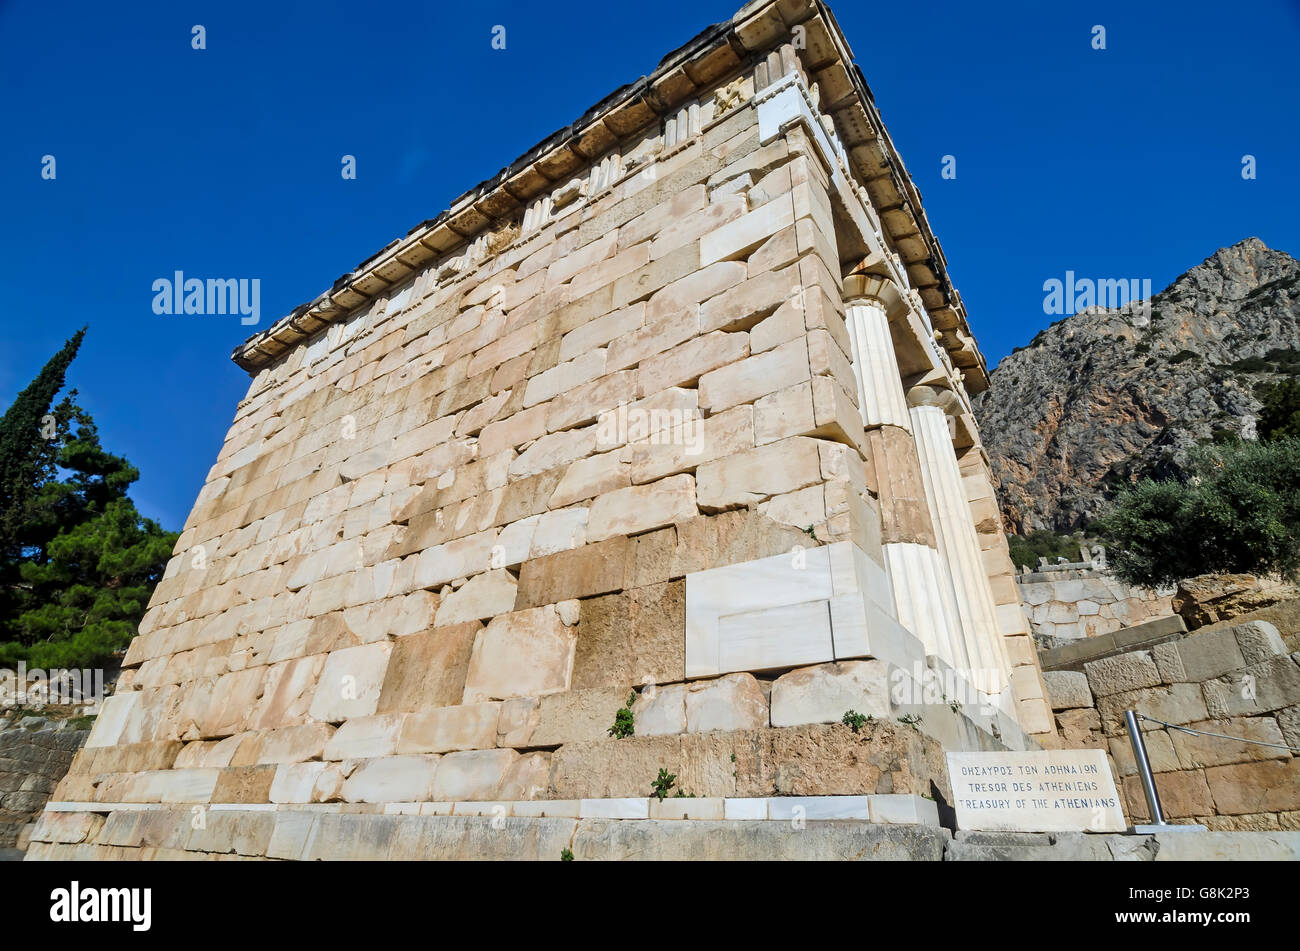 Treasury of the Athenians at Archaeological Site of Delphi Greece Stock Photo